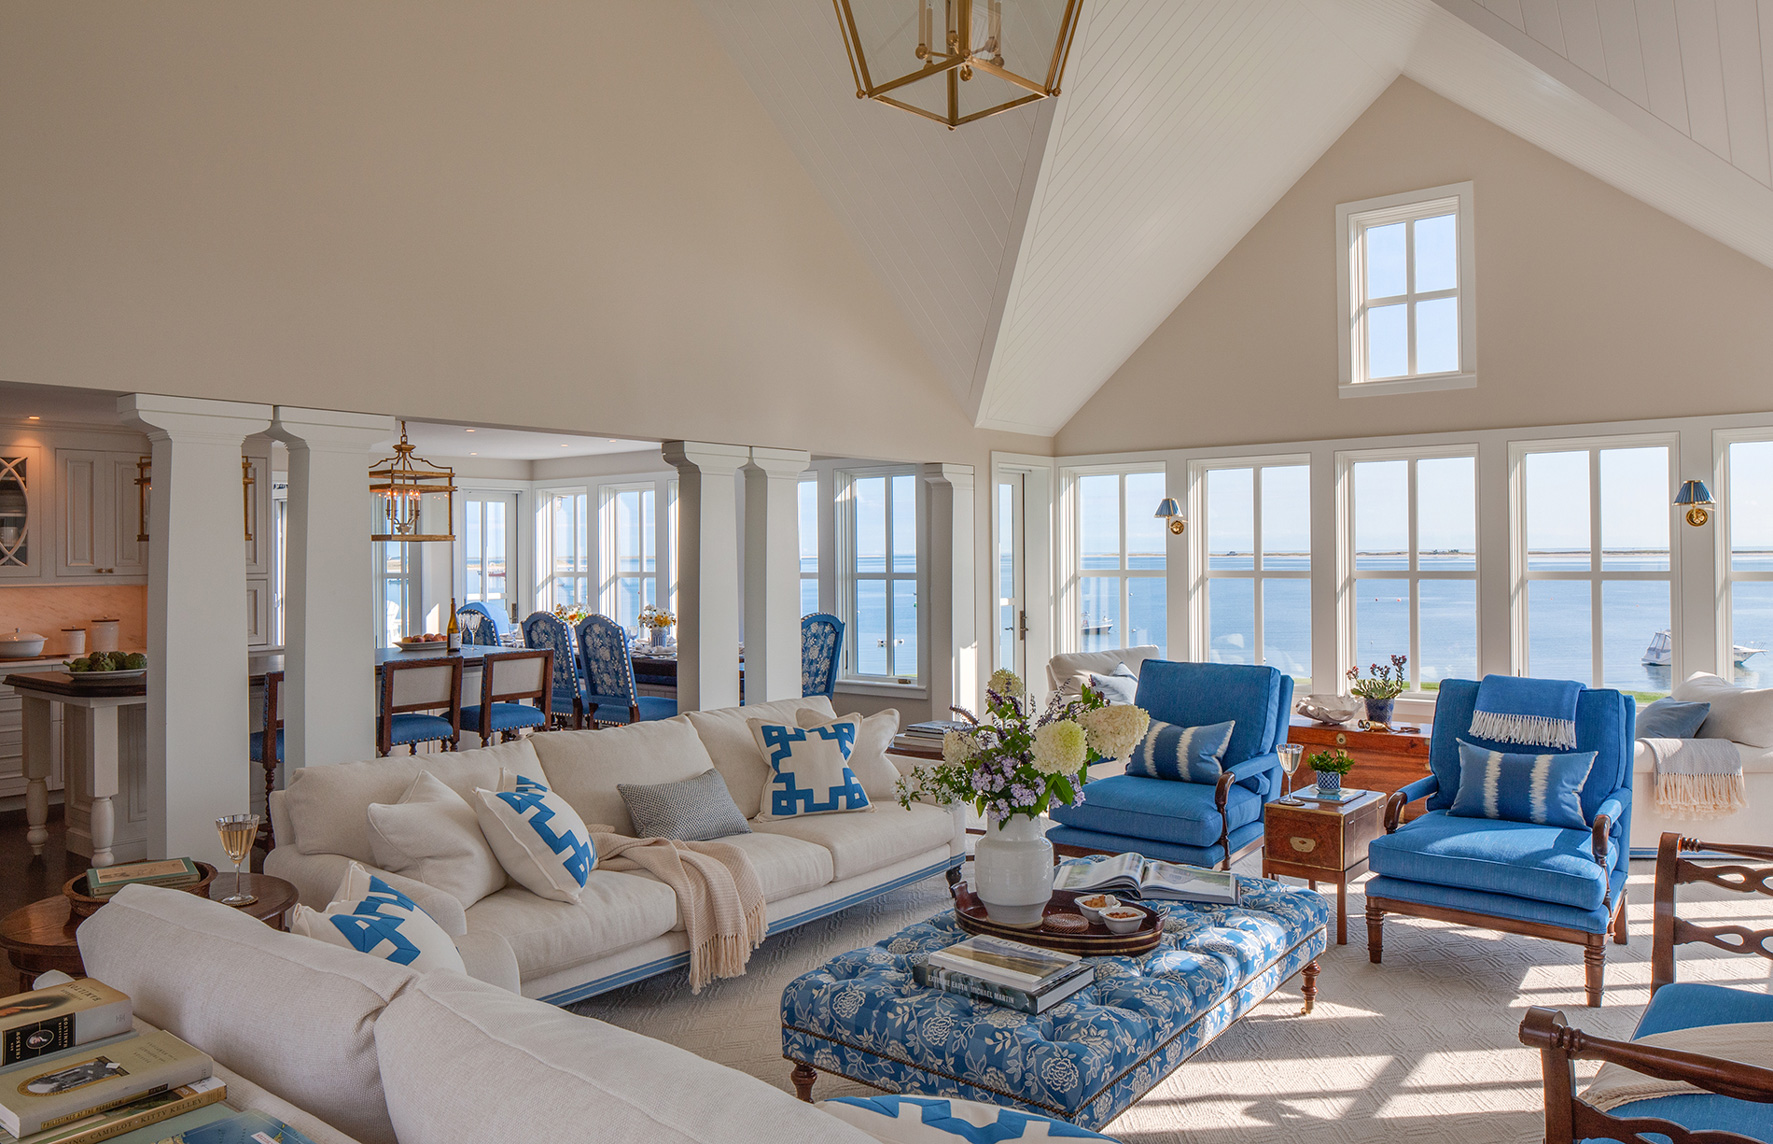 Family room overlooking the water renovated by Polhemus Savery DaSilva Architects Builders